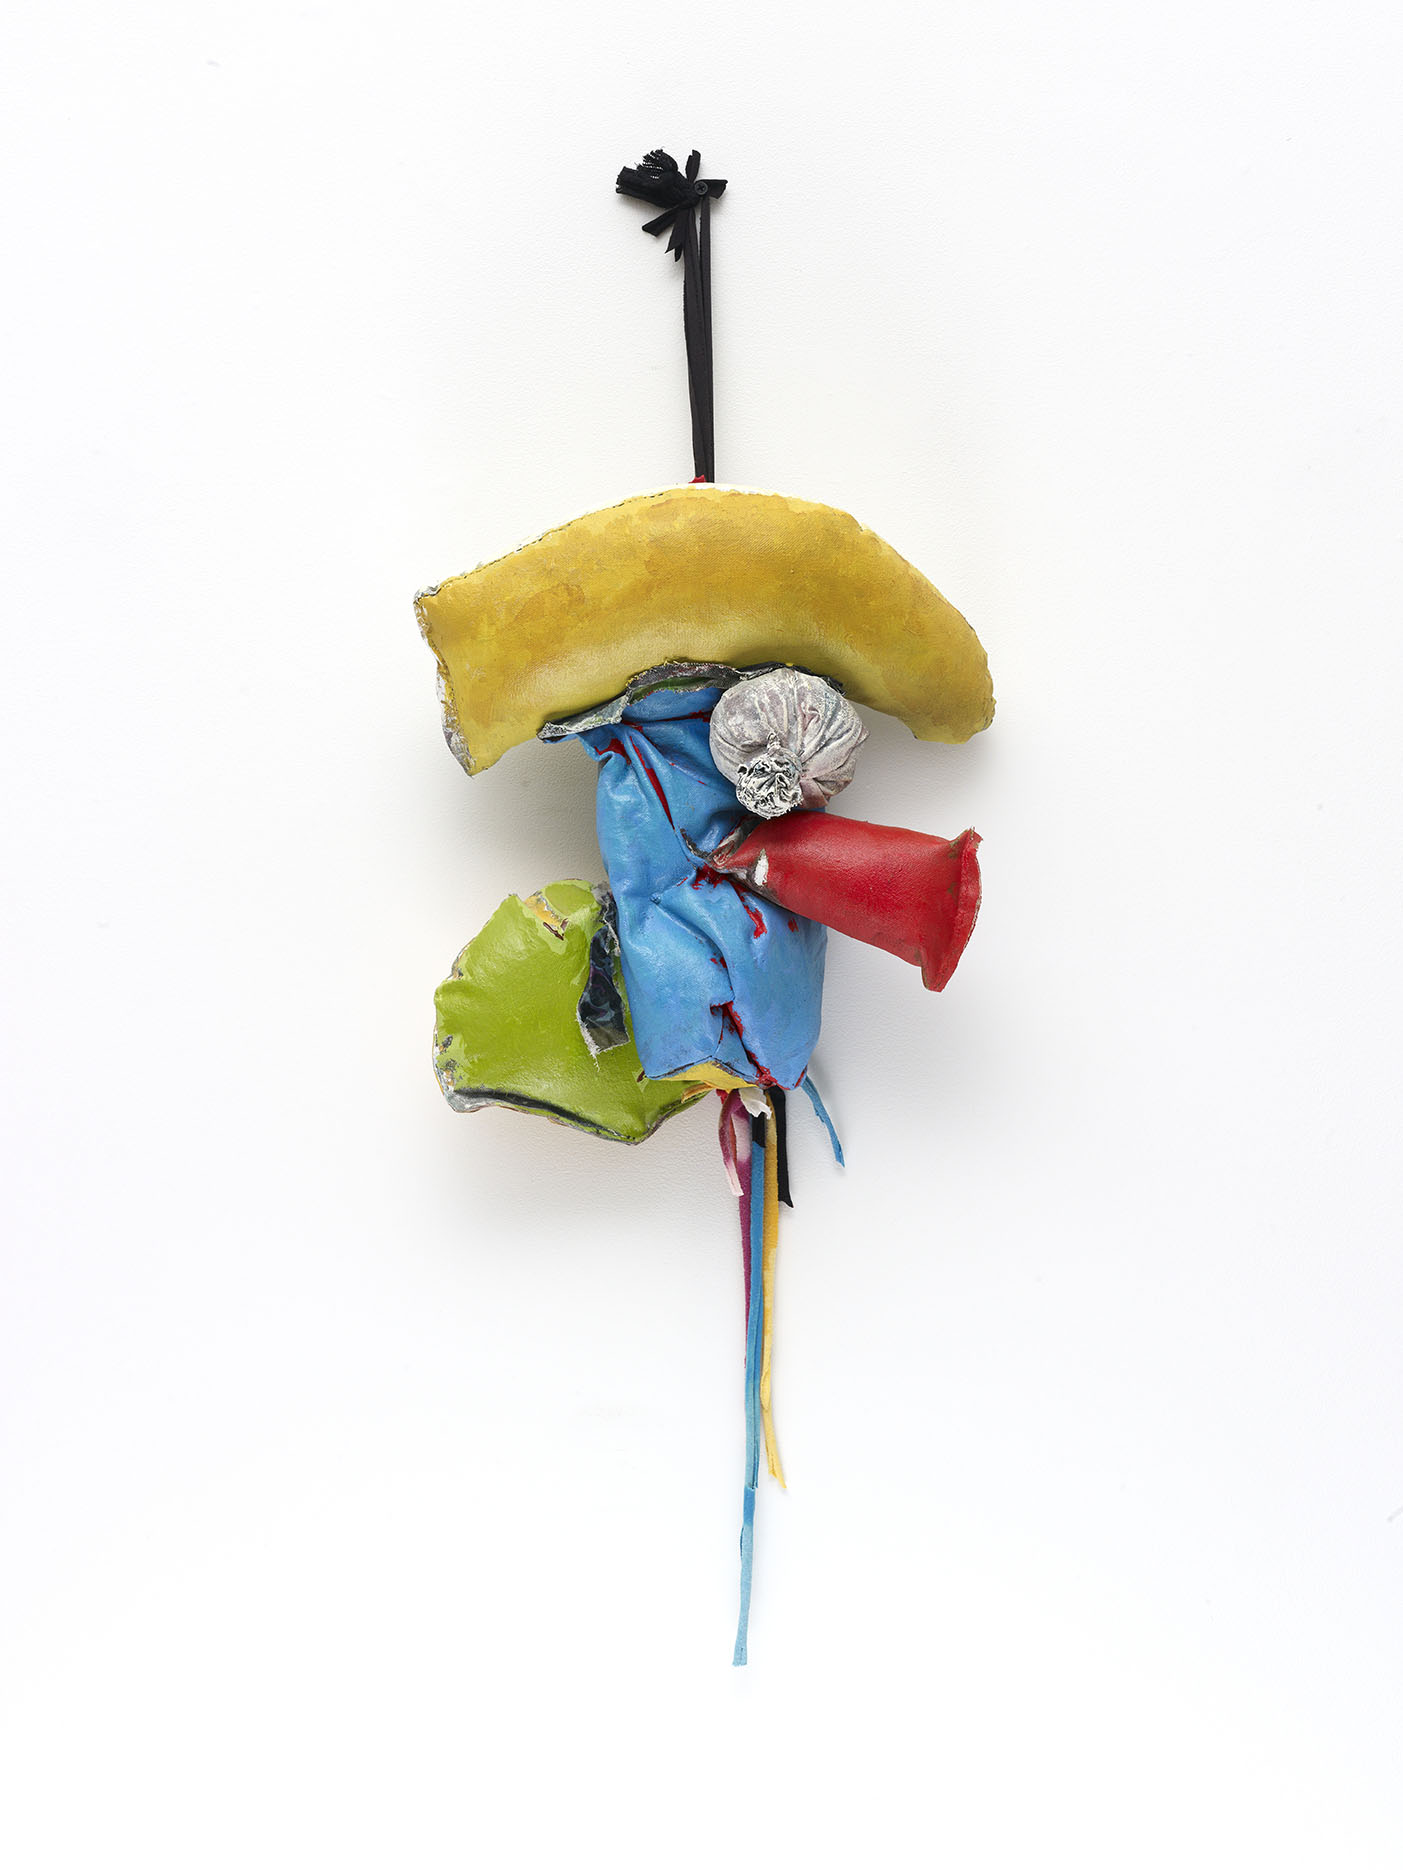 John Outterbridge, Rag and Bag Idiom III, 2012. Mixed media. 34 x 14 x 7 ½ inches. Image courtesy of Tilton Gallery, New York.